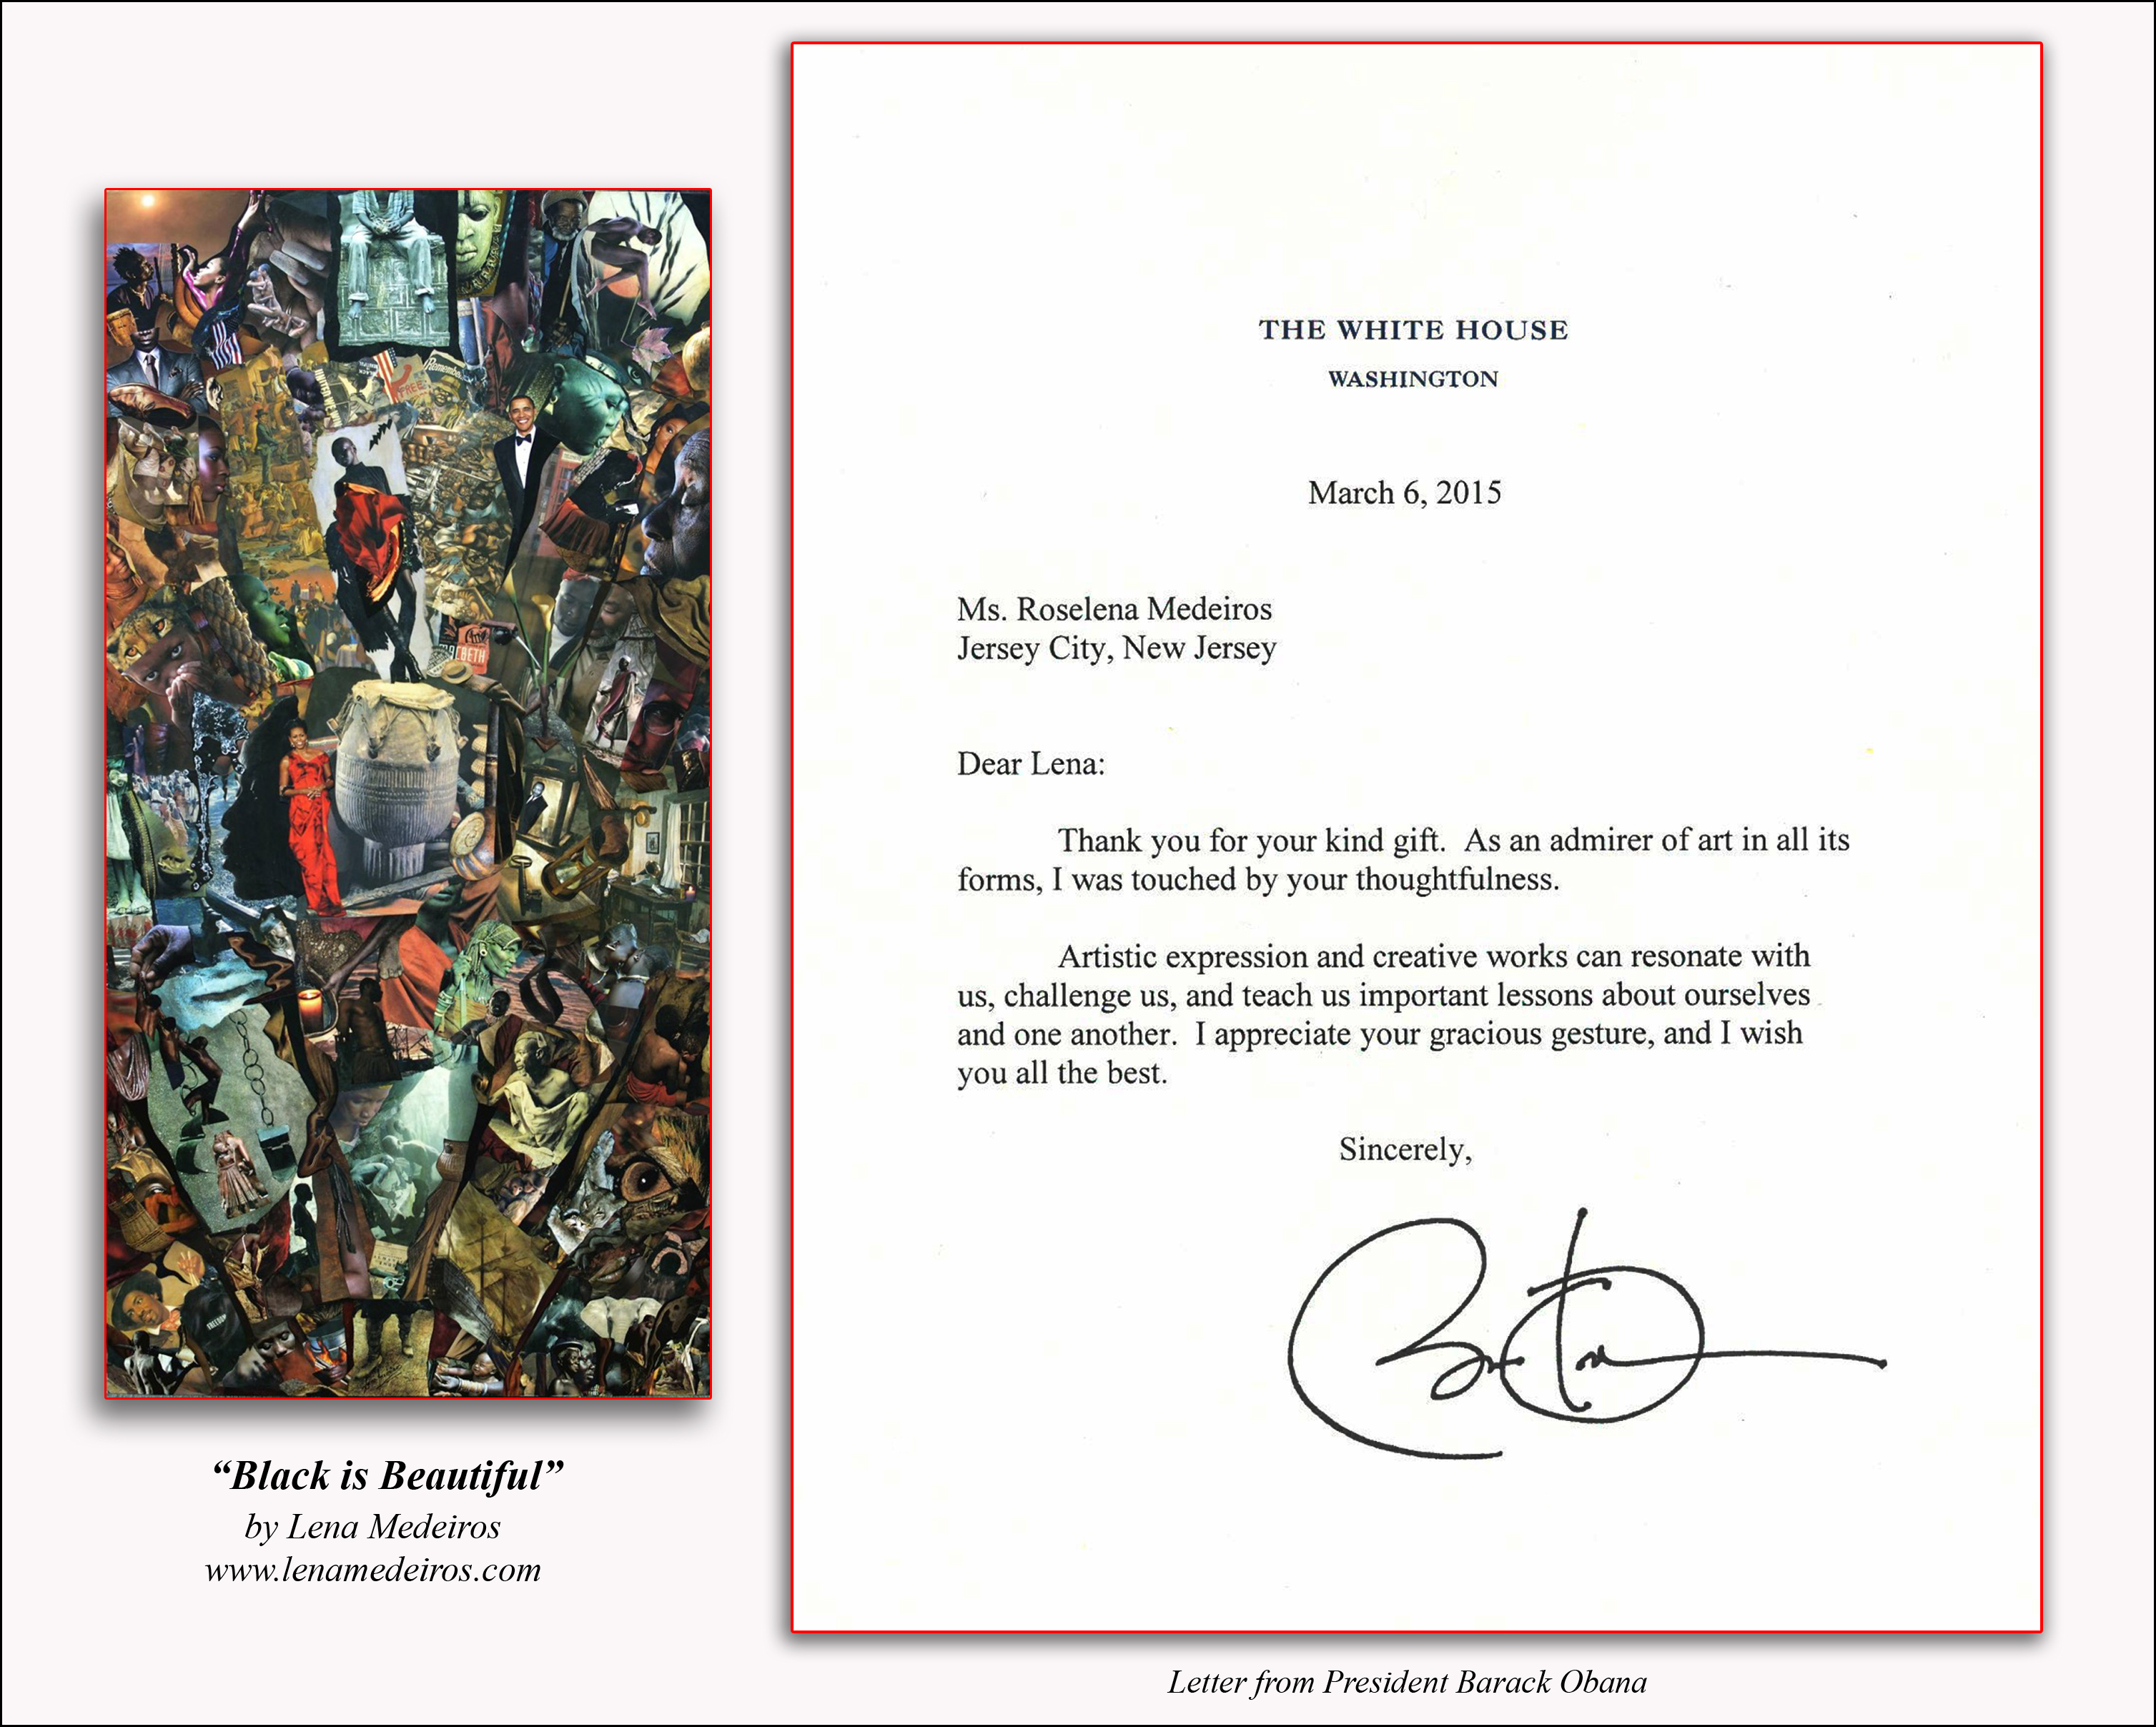 Obama Letter to Lena Medeiros version 2 framed.jpg